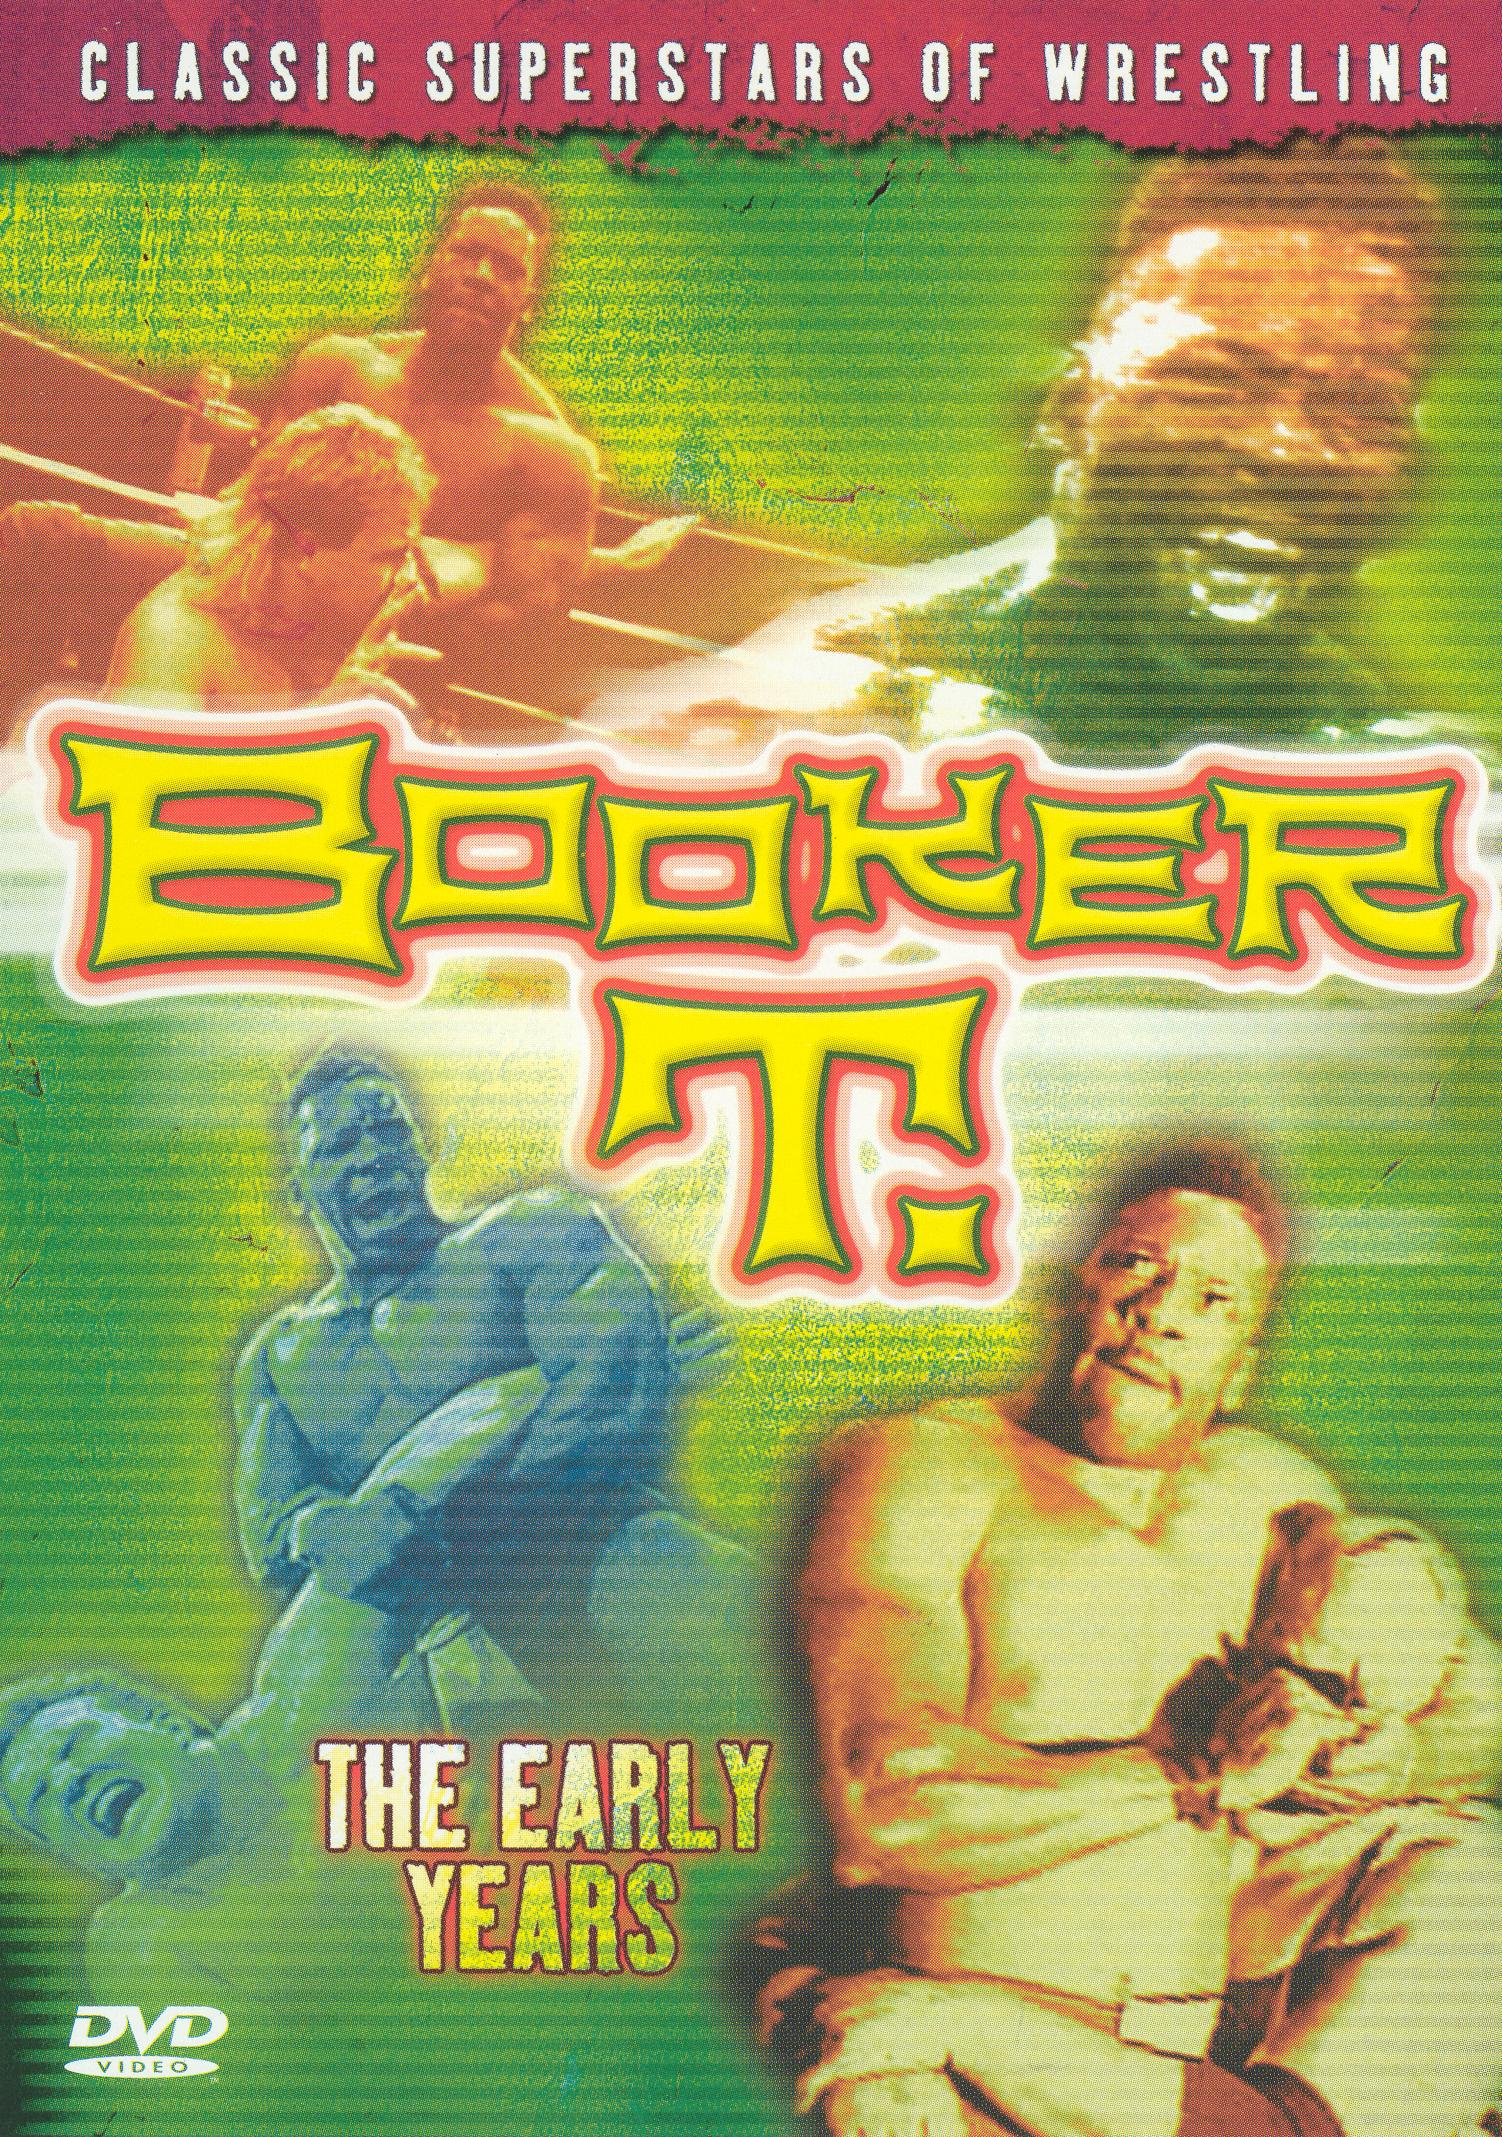 Classic Superstars of Wrestling: Booker T - The Early Years